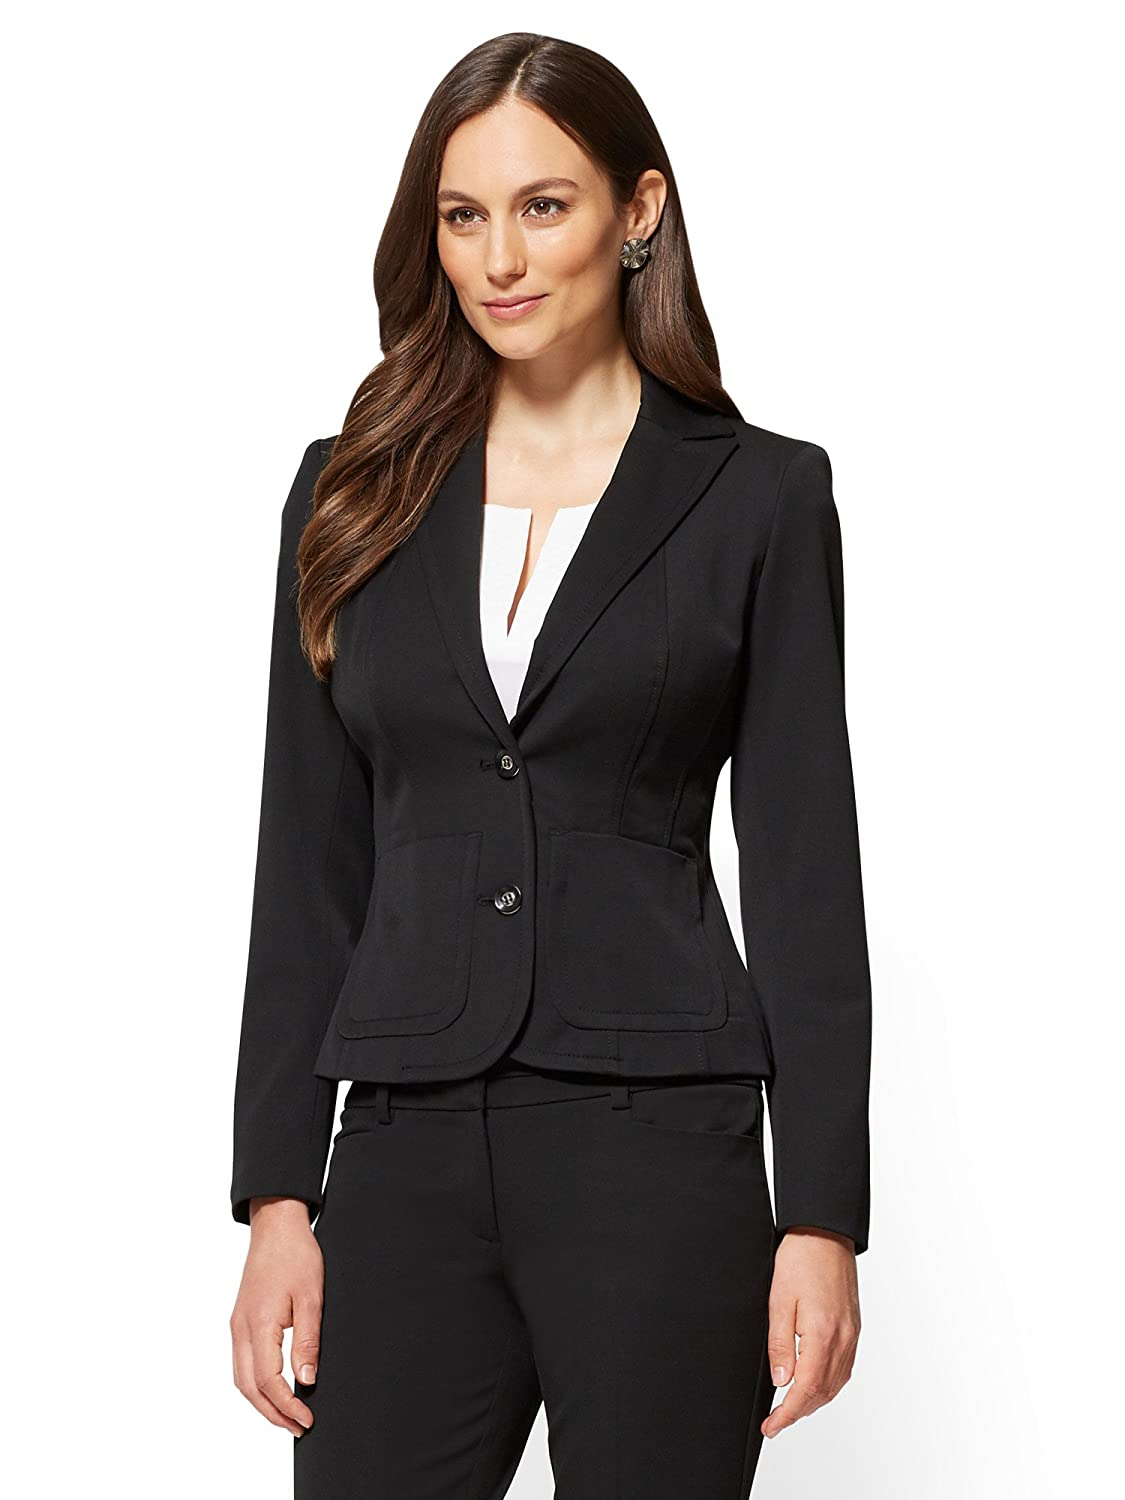 New York & CO. Women's 7Th Avenue Tall Jacket - Topstitched Two-Button 2 Black